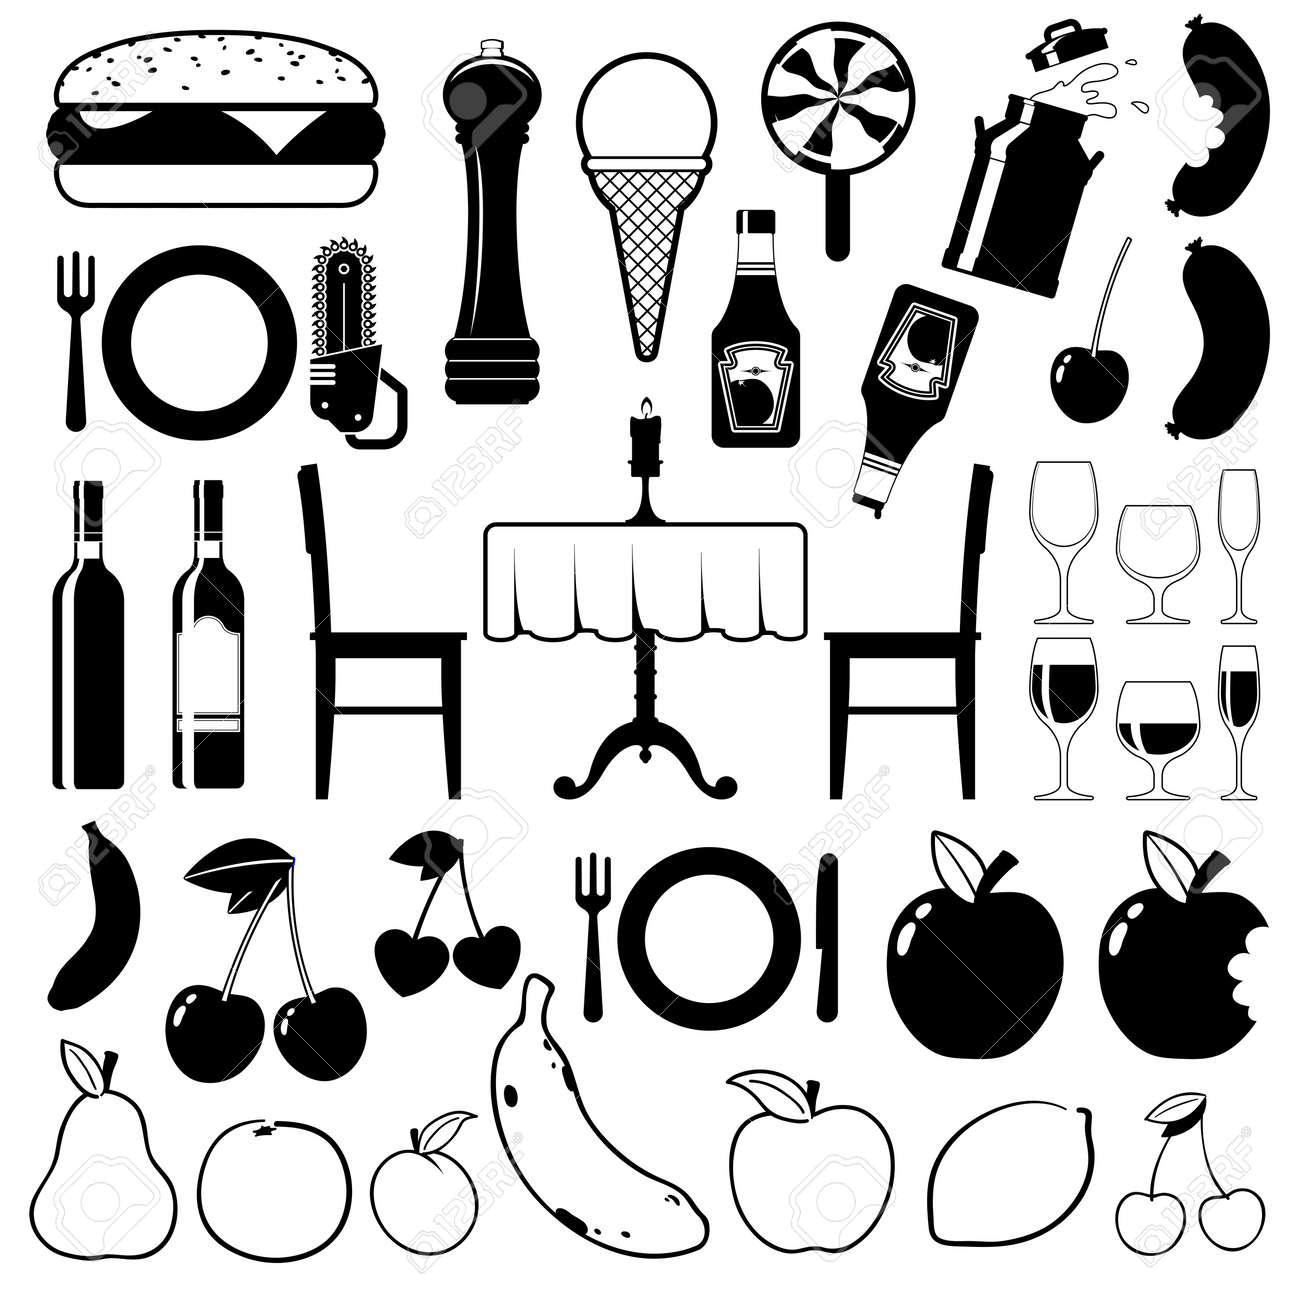 Collection of food icons with fast food, fruit, dining table, wine and beverages, vector illustrations Stock Photo - 16650250